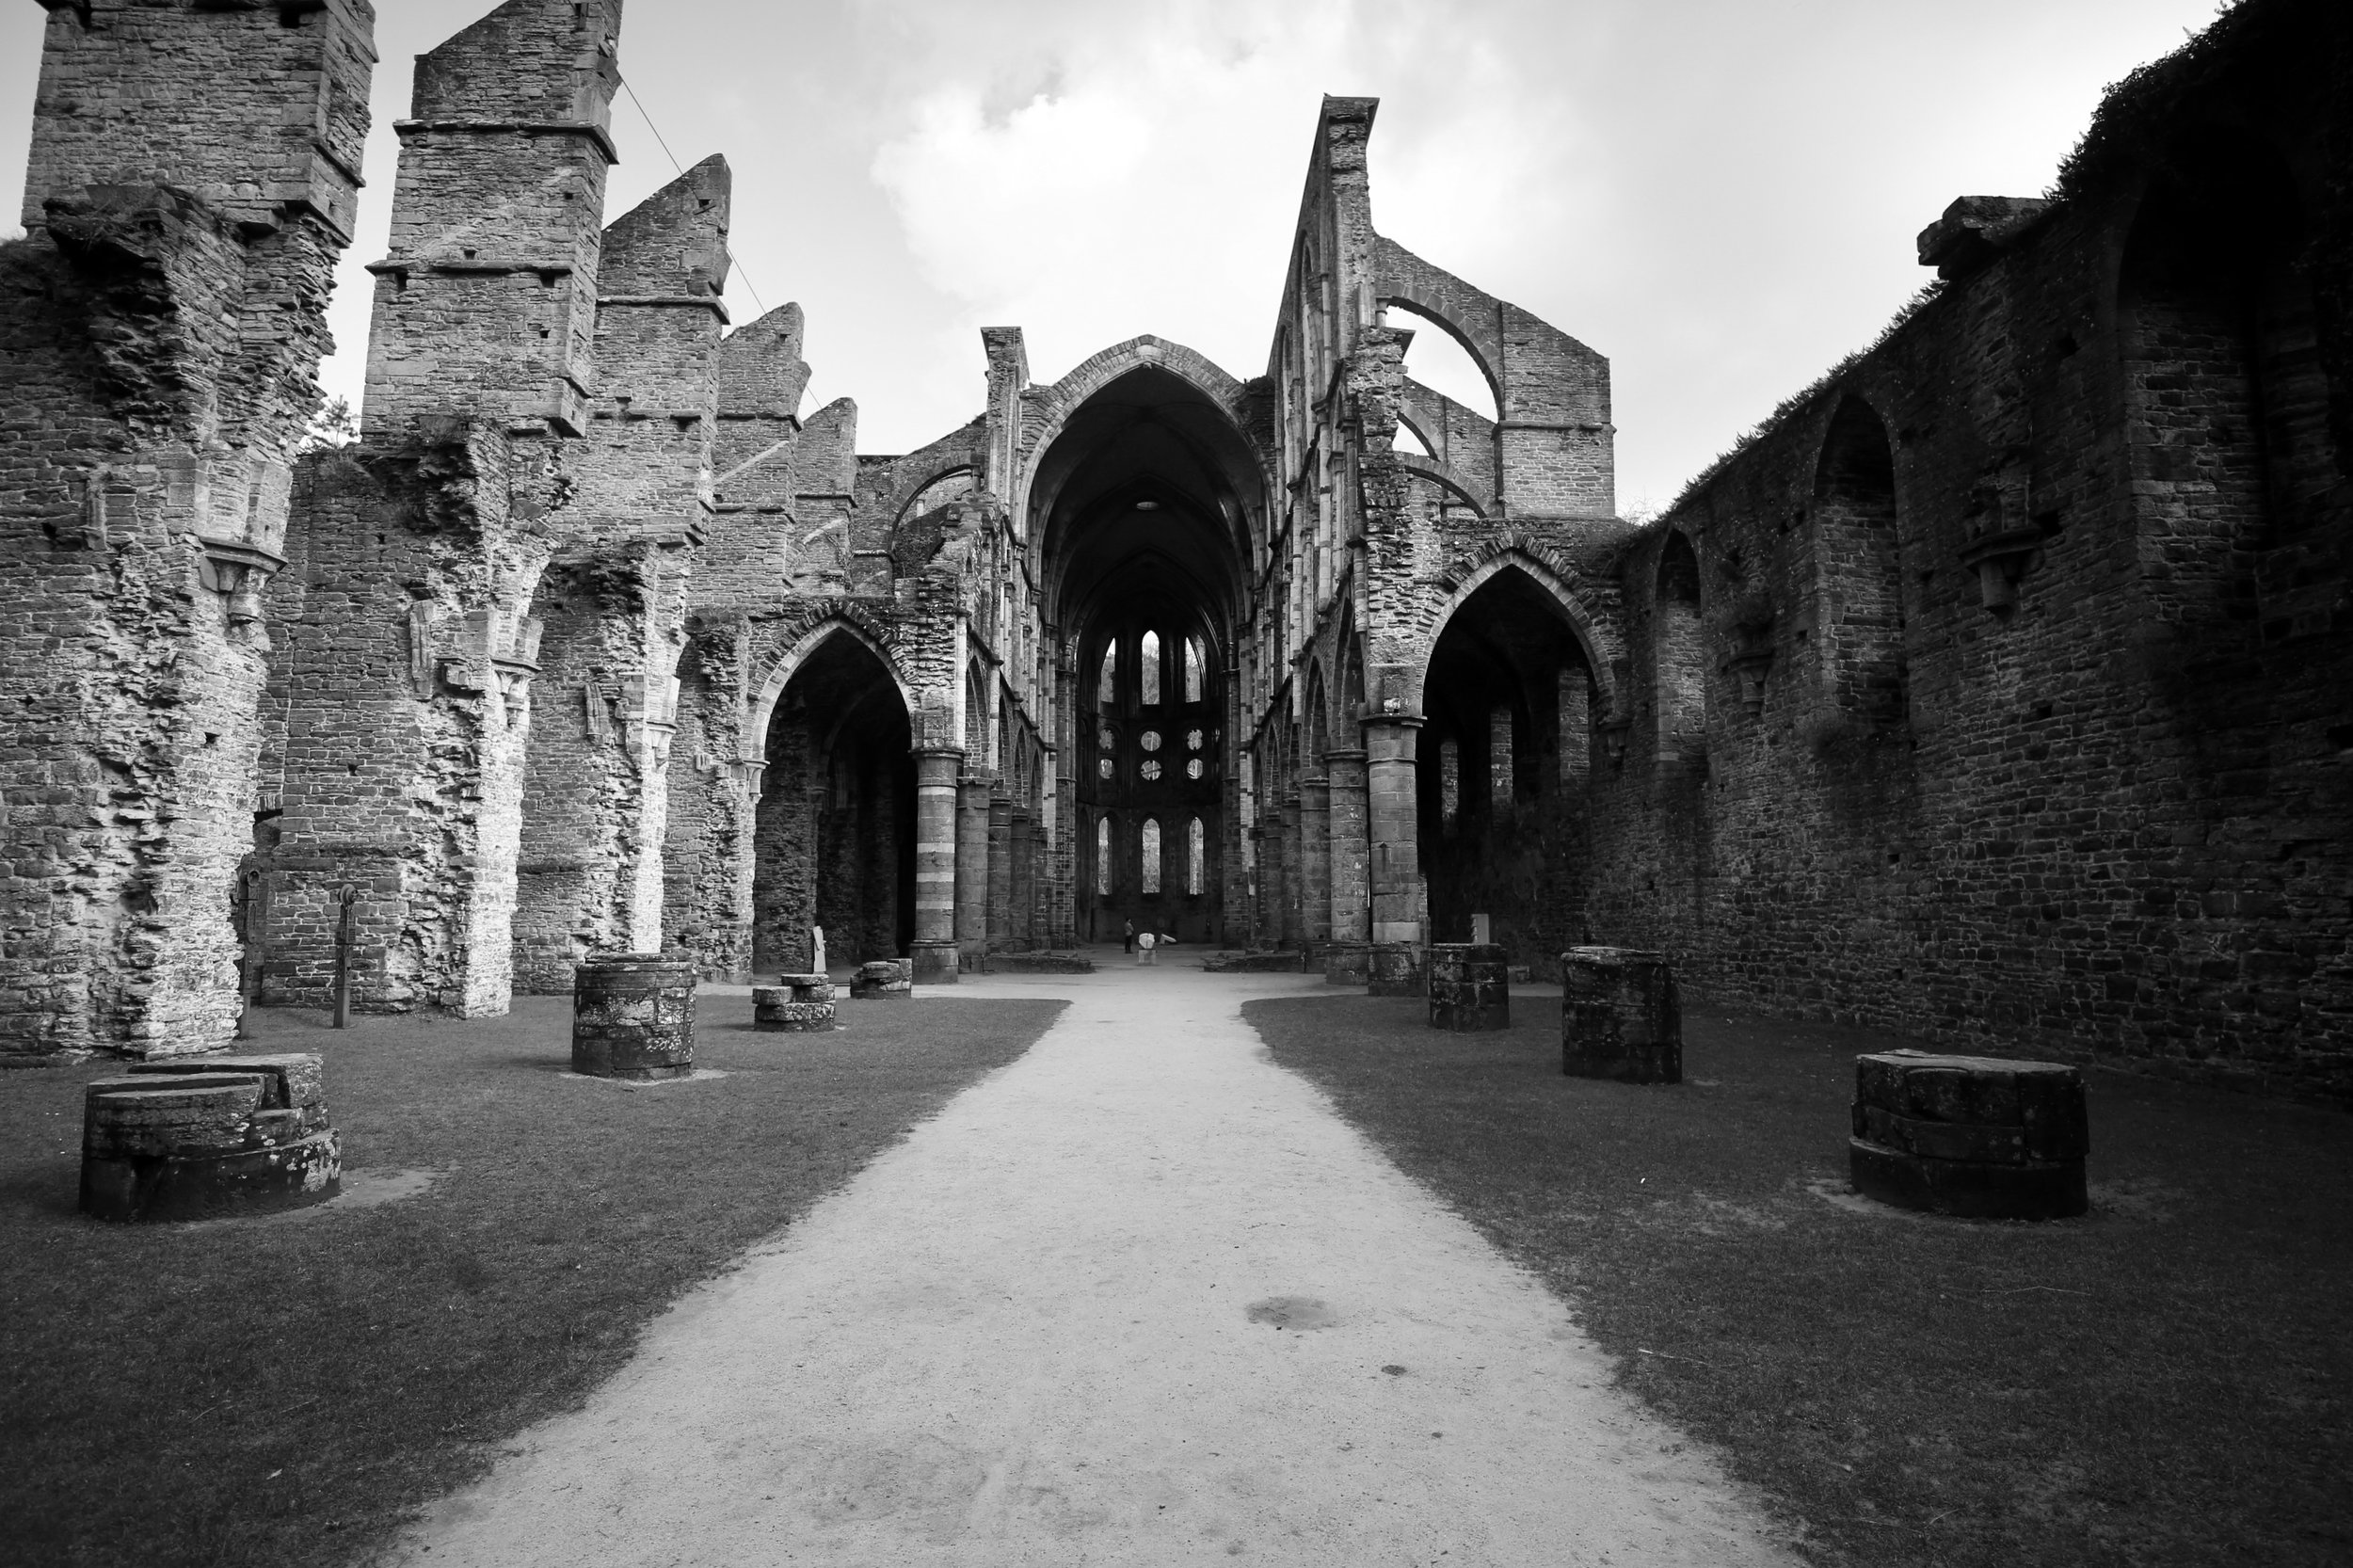 The ruins of Abbaye de Villers, Belgium - in black and white.